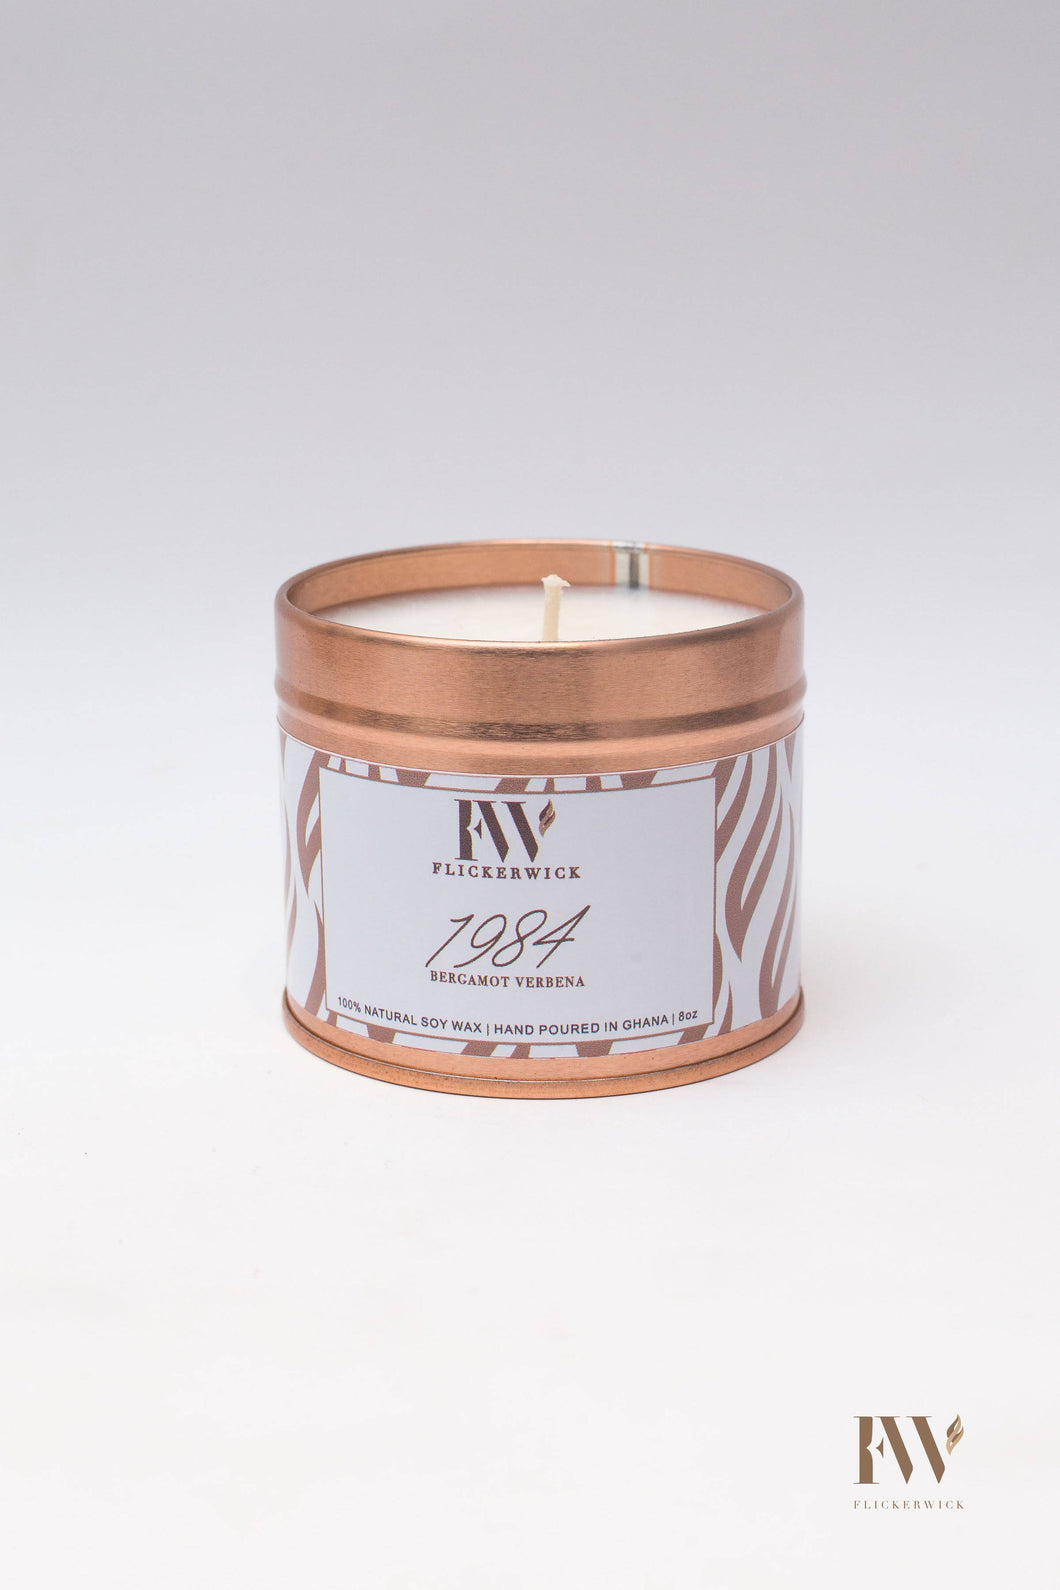 Flickerwick Scented Candle